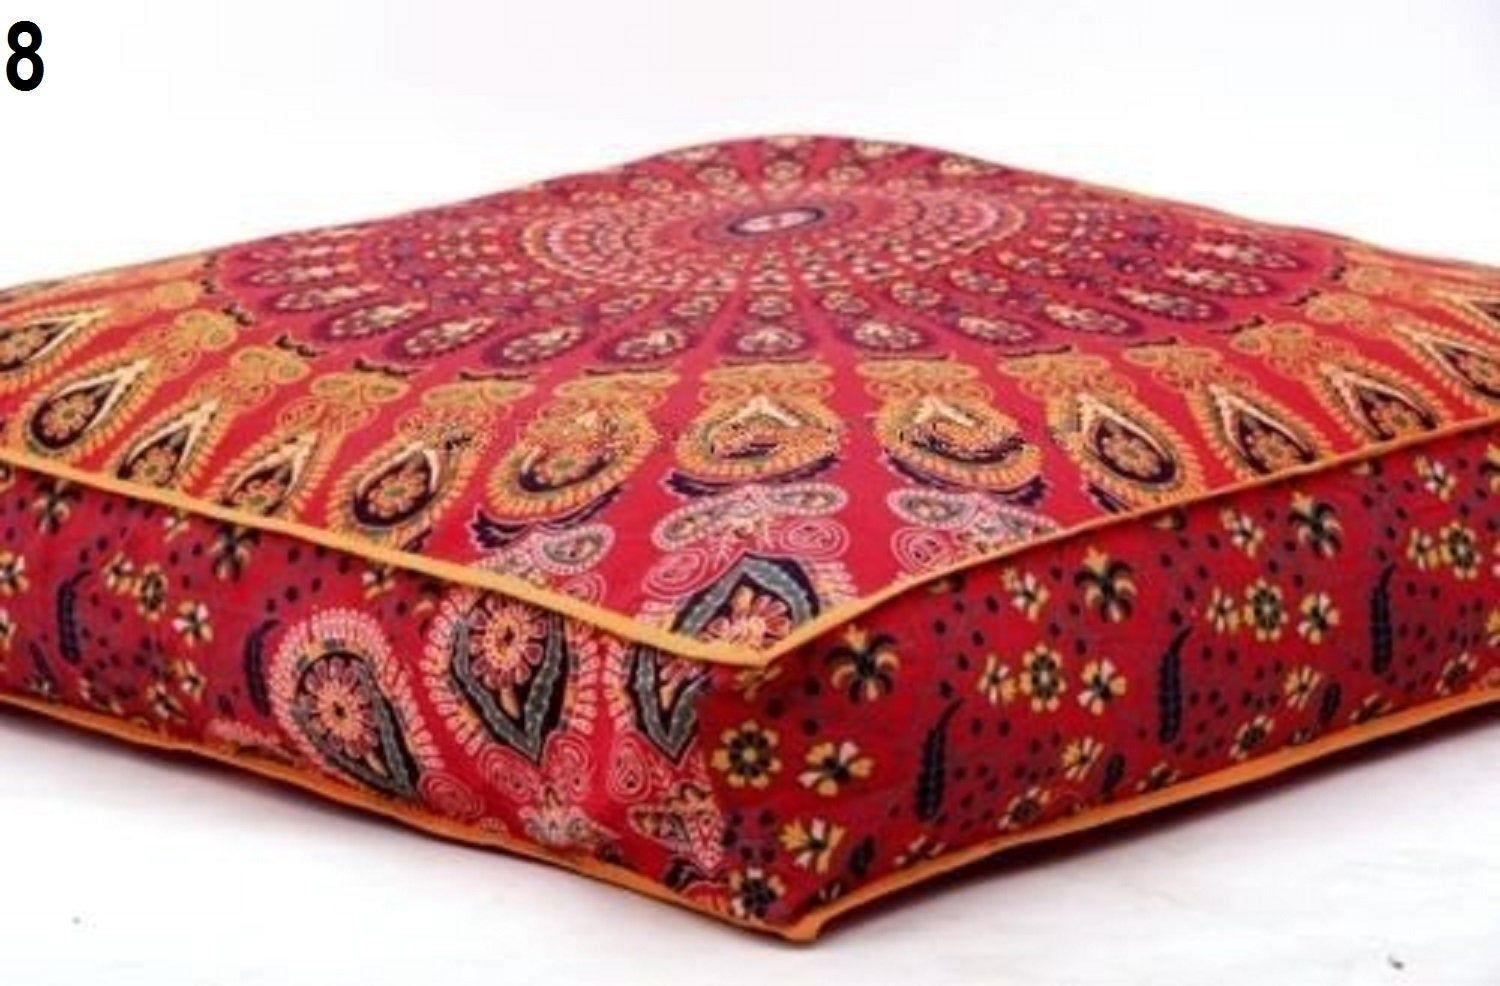 Mandala Square Floor Pillow Pouf Cushion Cover Meditation Image 8